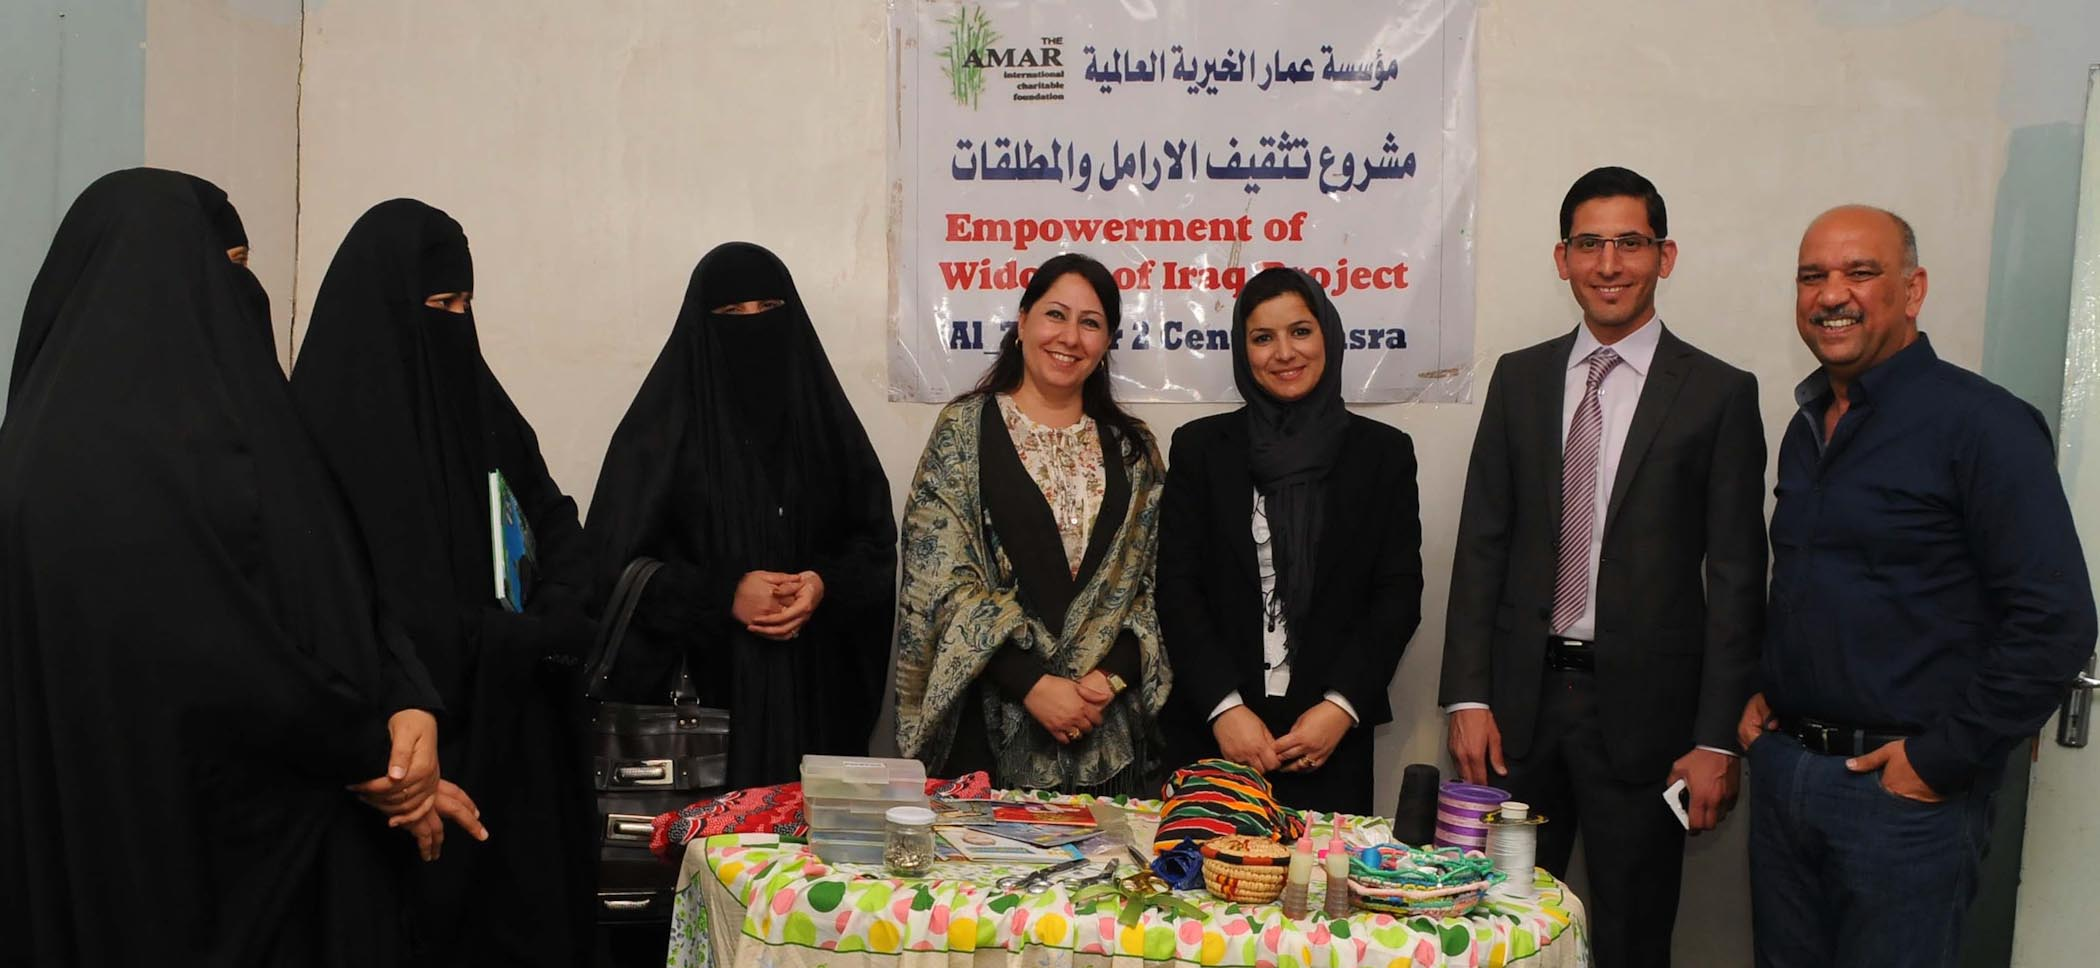 Women Involved With The Empowerment Of Widows' Programme Stand Alongside AMAR's Regional Manager, Dr Ali Muthanna (far Right) And Saif Tariq Of The Project Sponsors, Weir Group